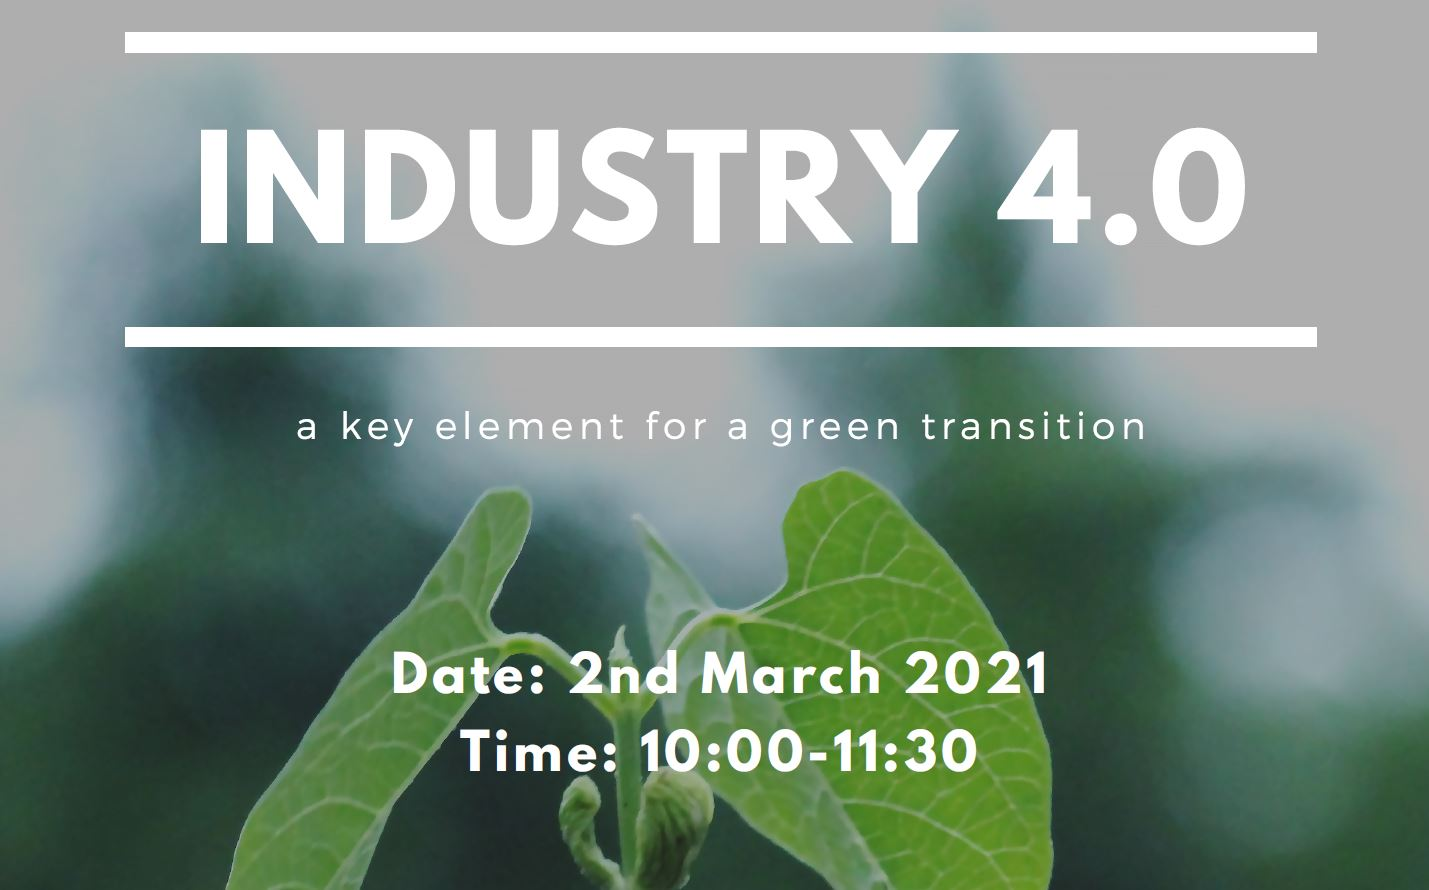 Industry 4.0 - a key element for a green transition